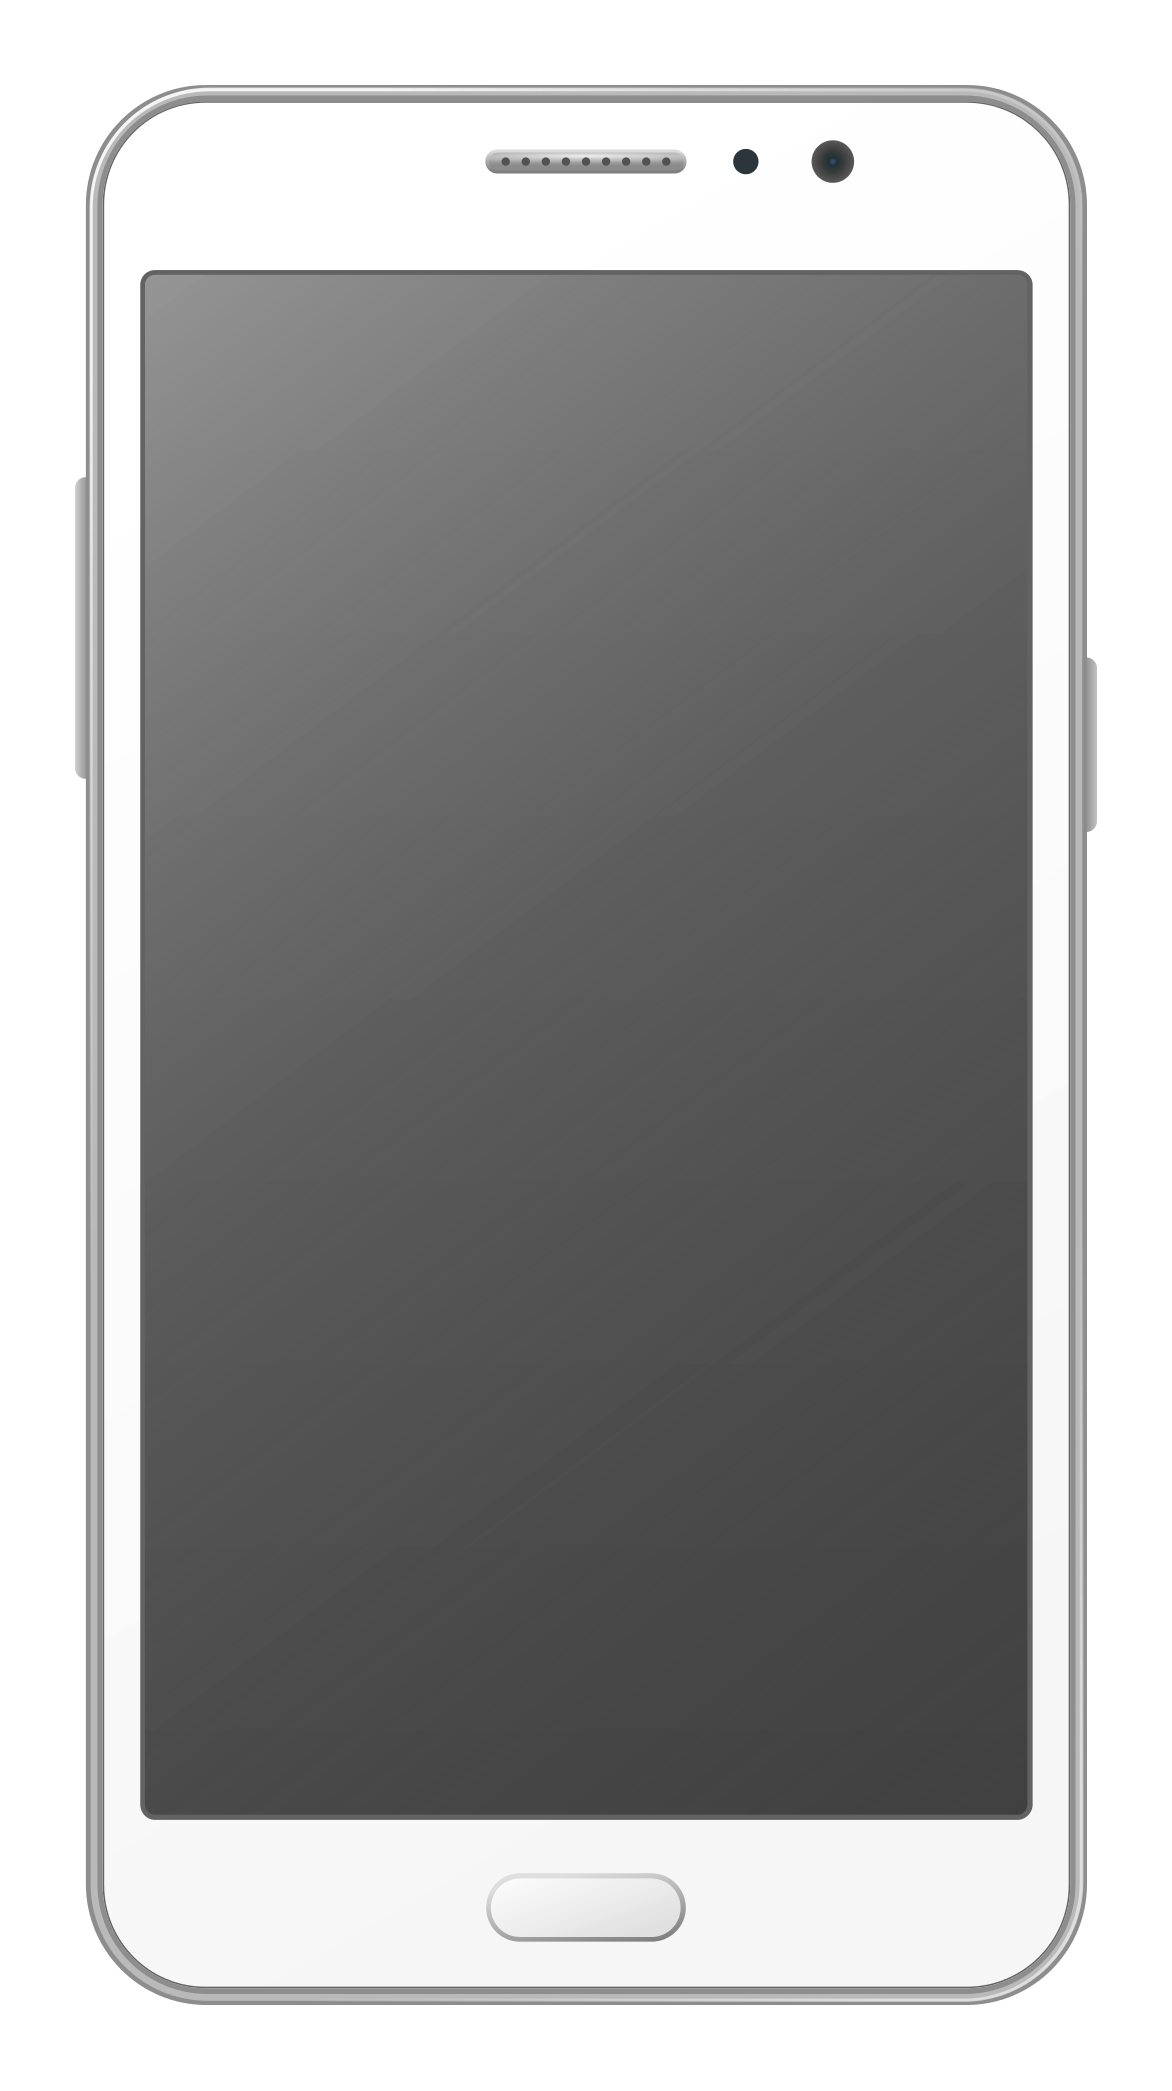 Smartphone Vector Mobile Png Transparent Image